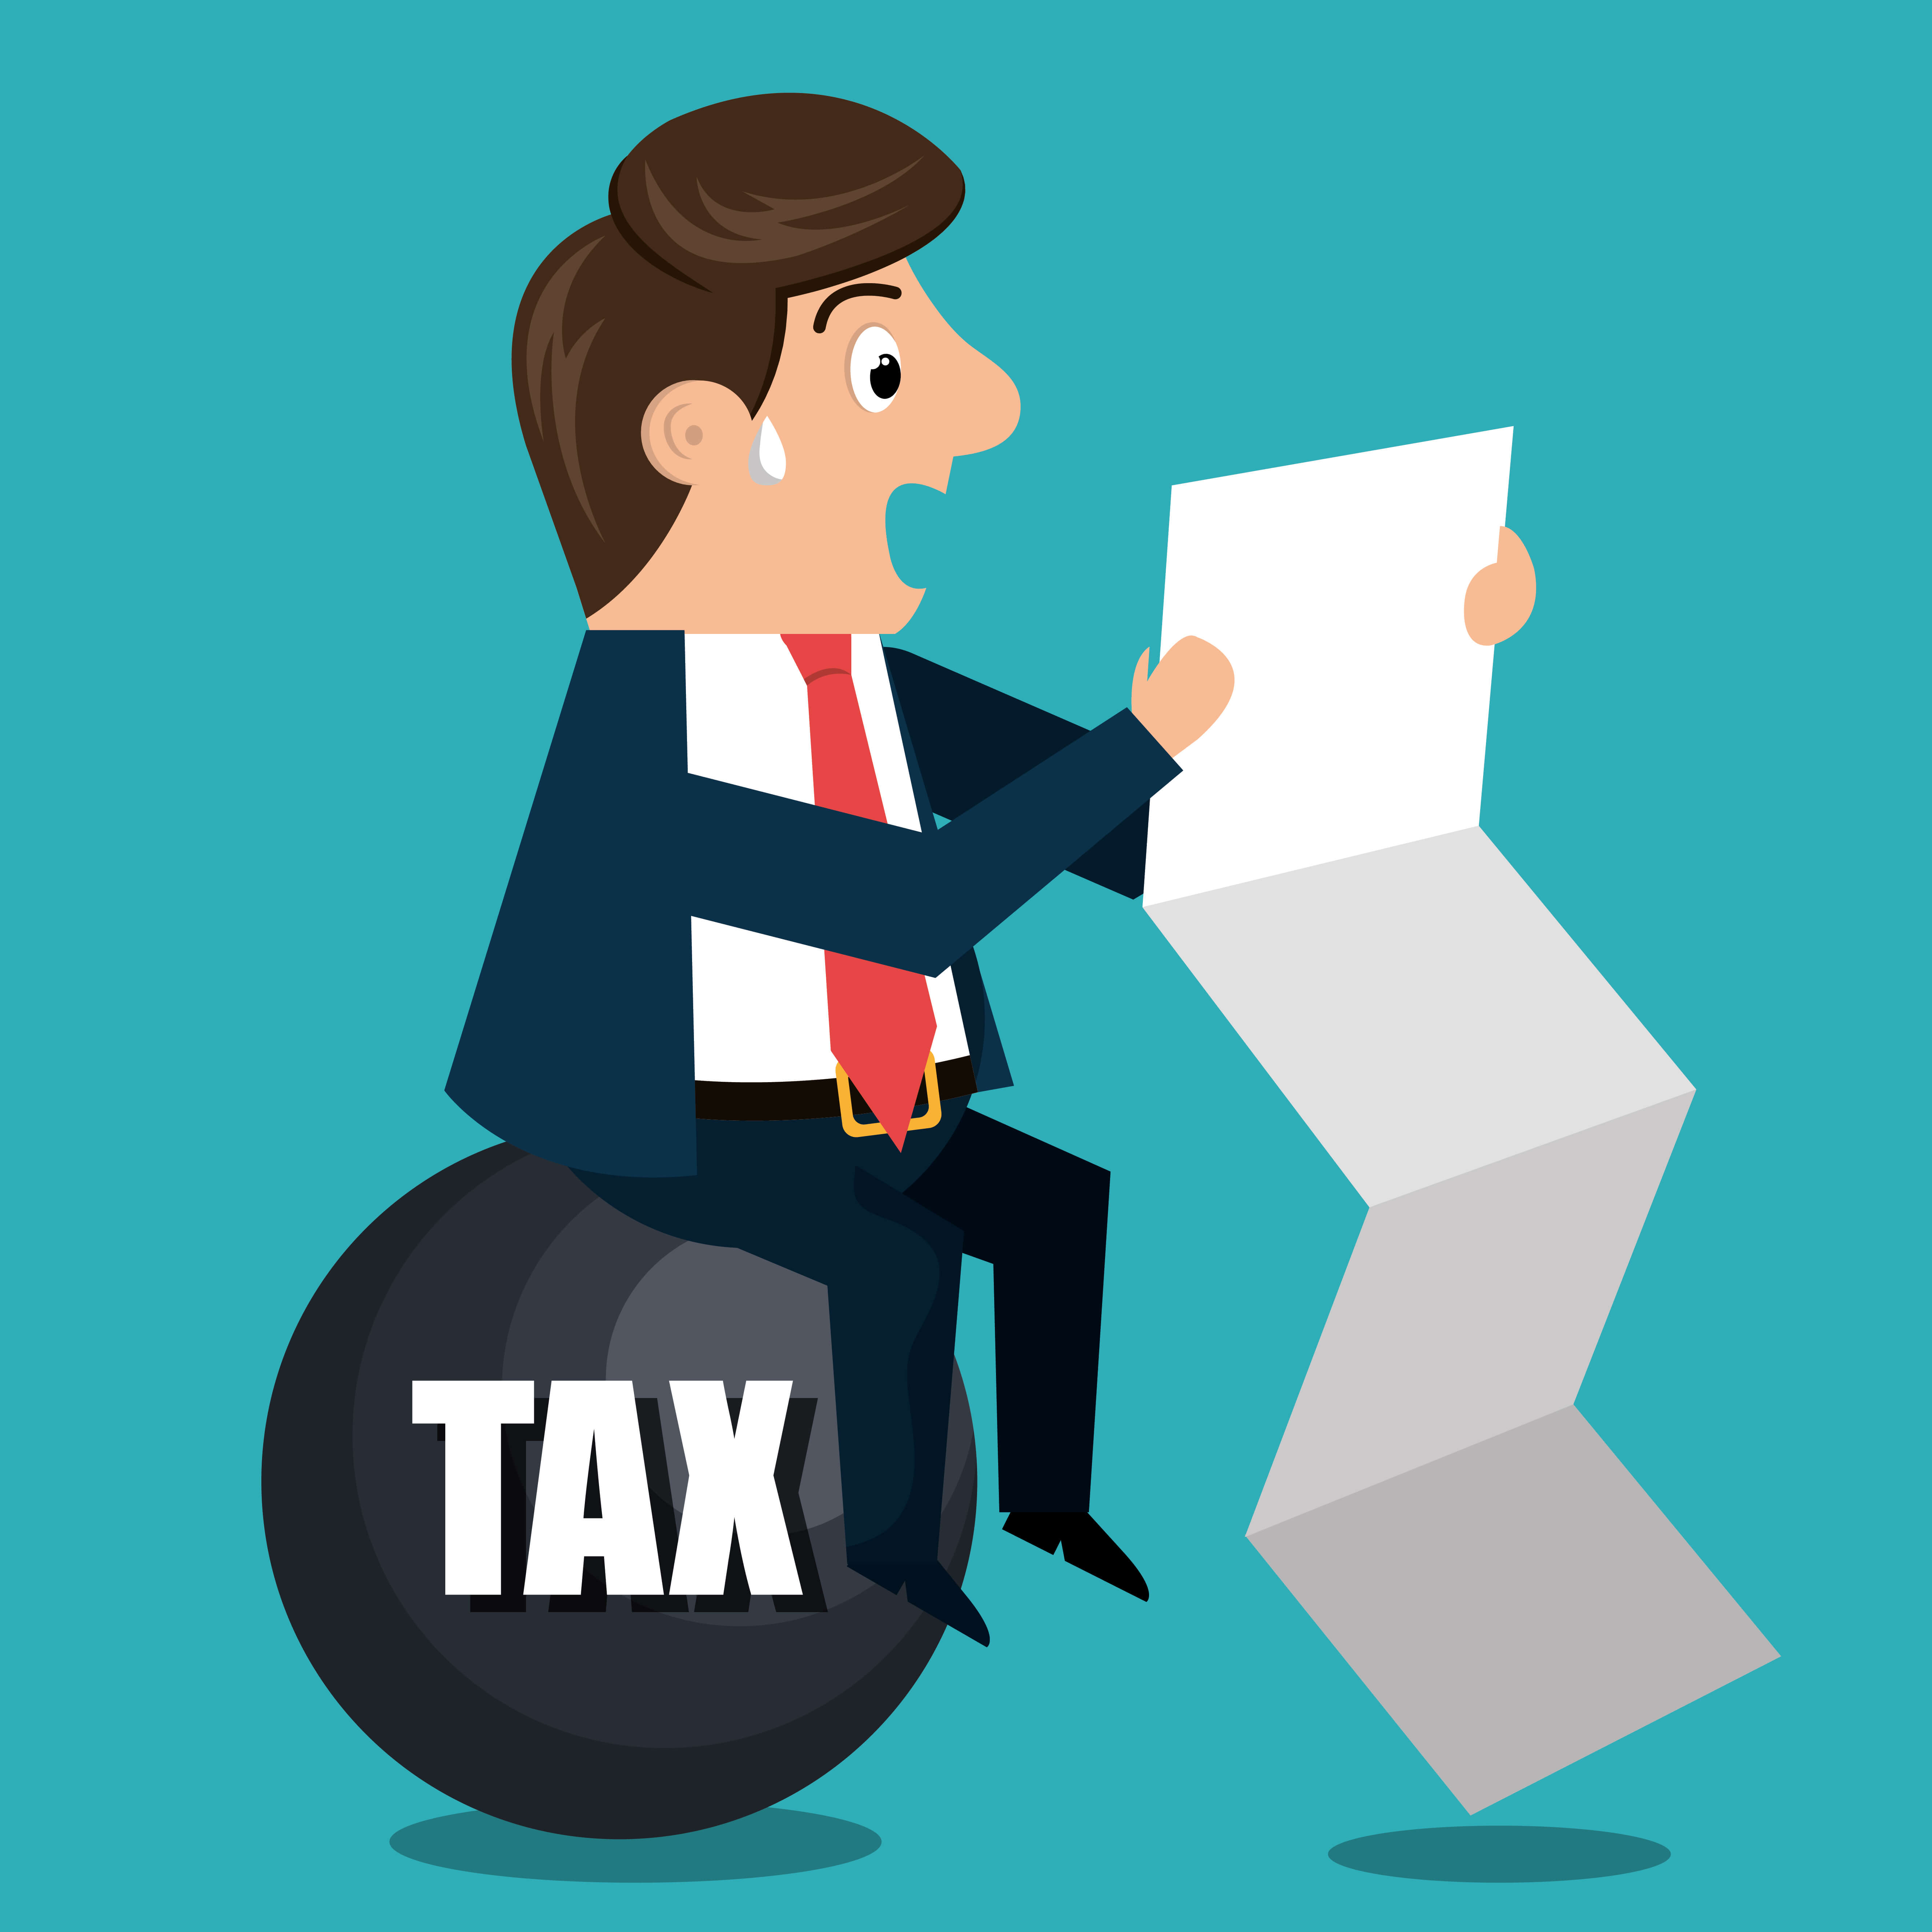 Points to be considered before filing an Income Tax Return